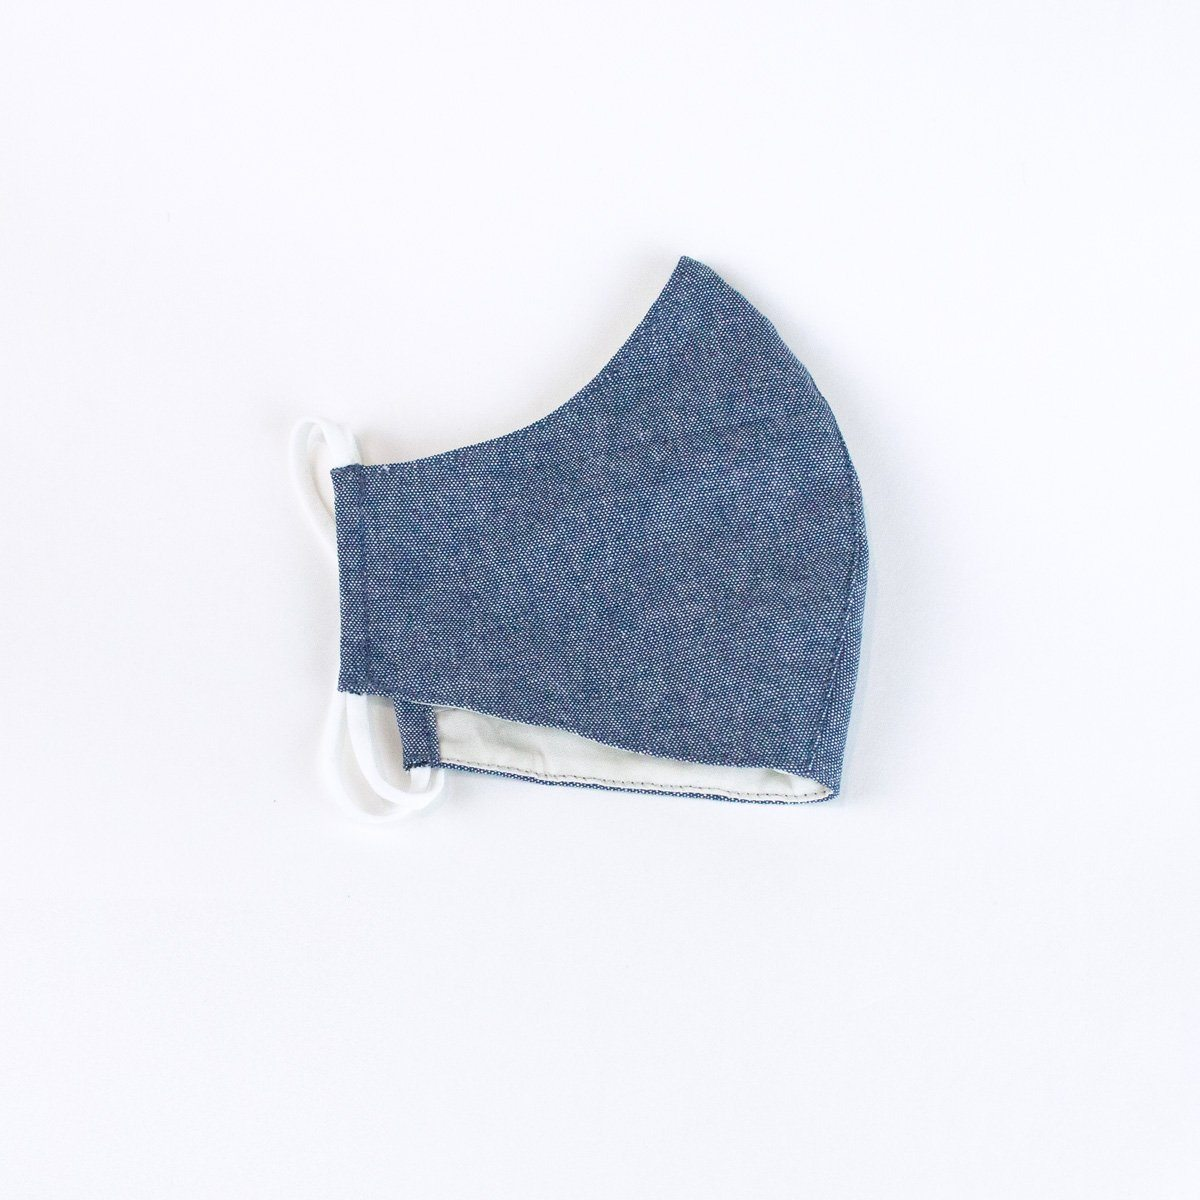 Chambray side view